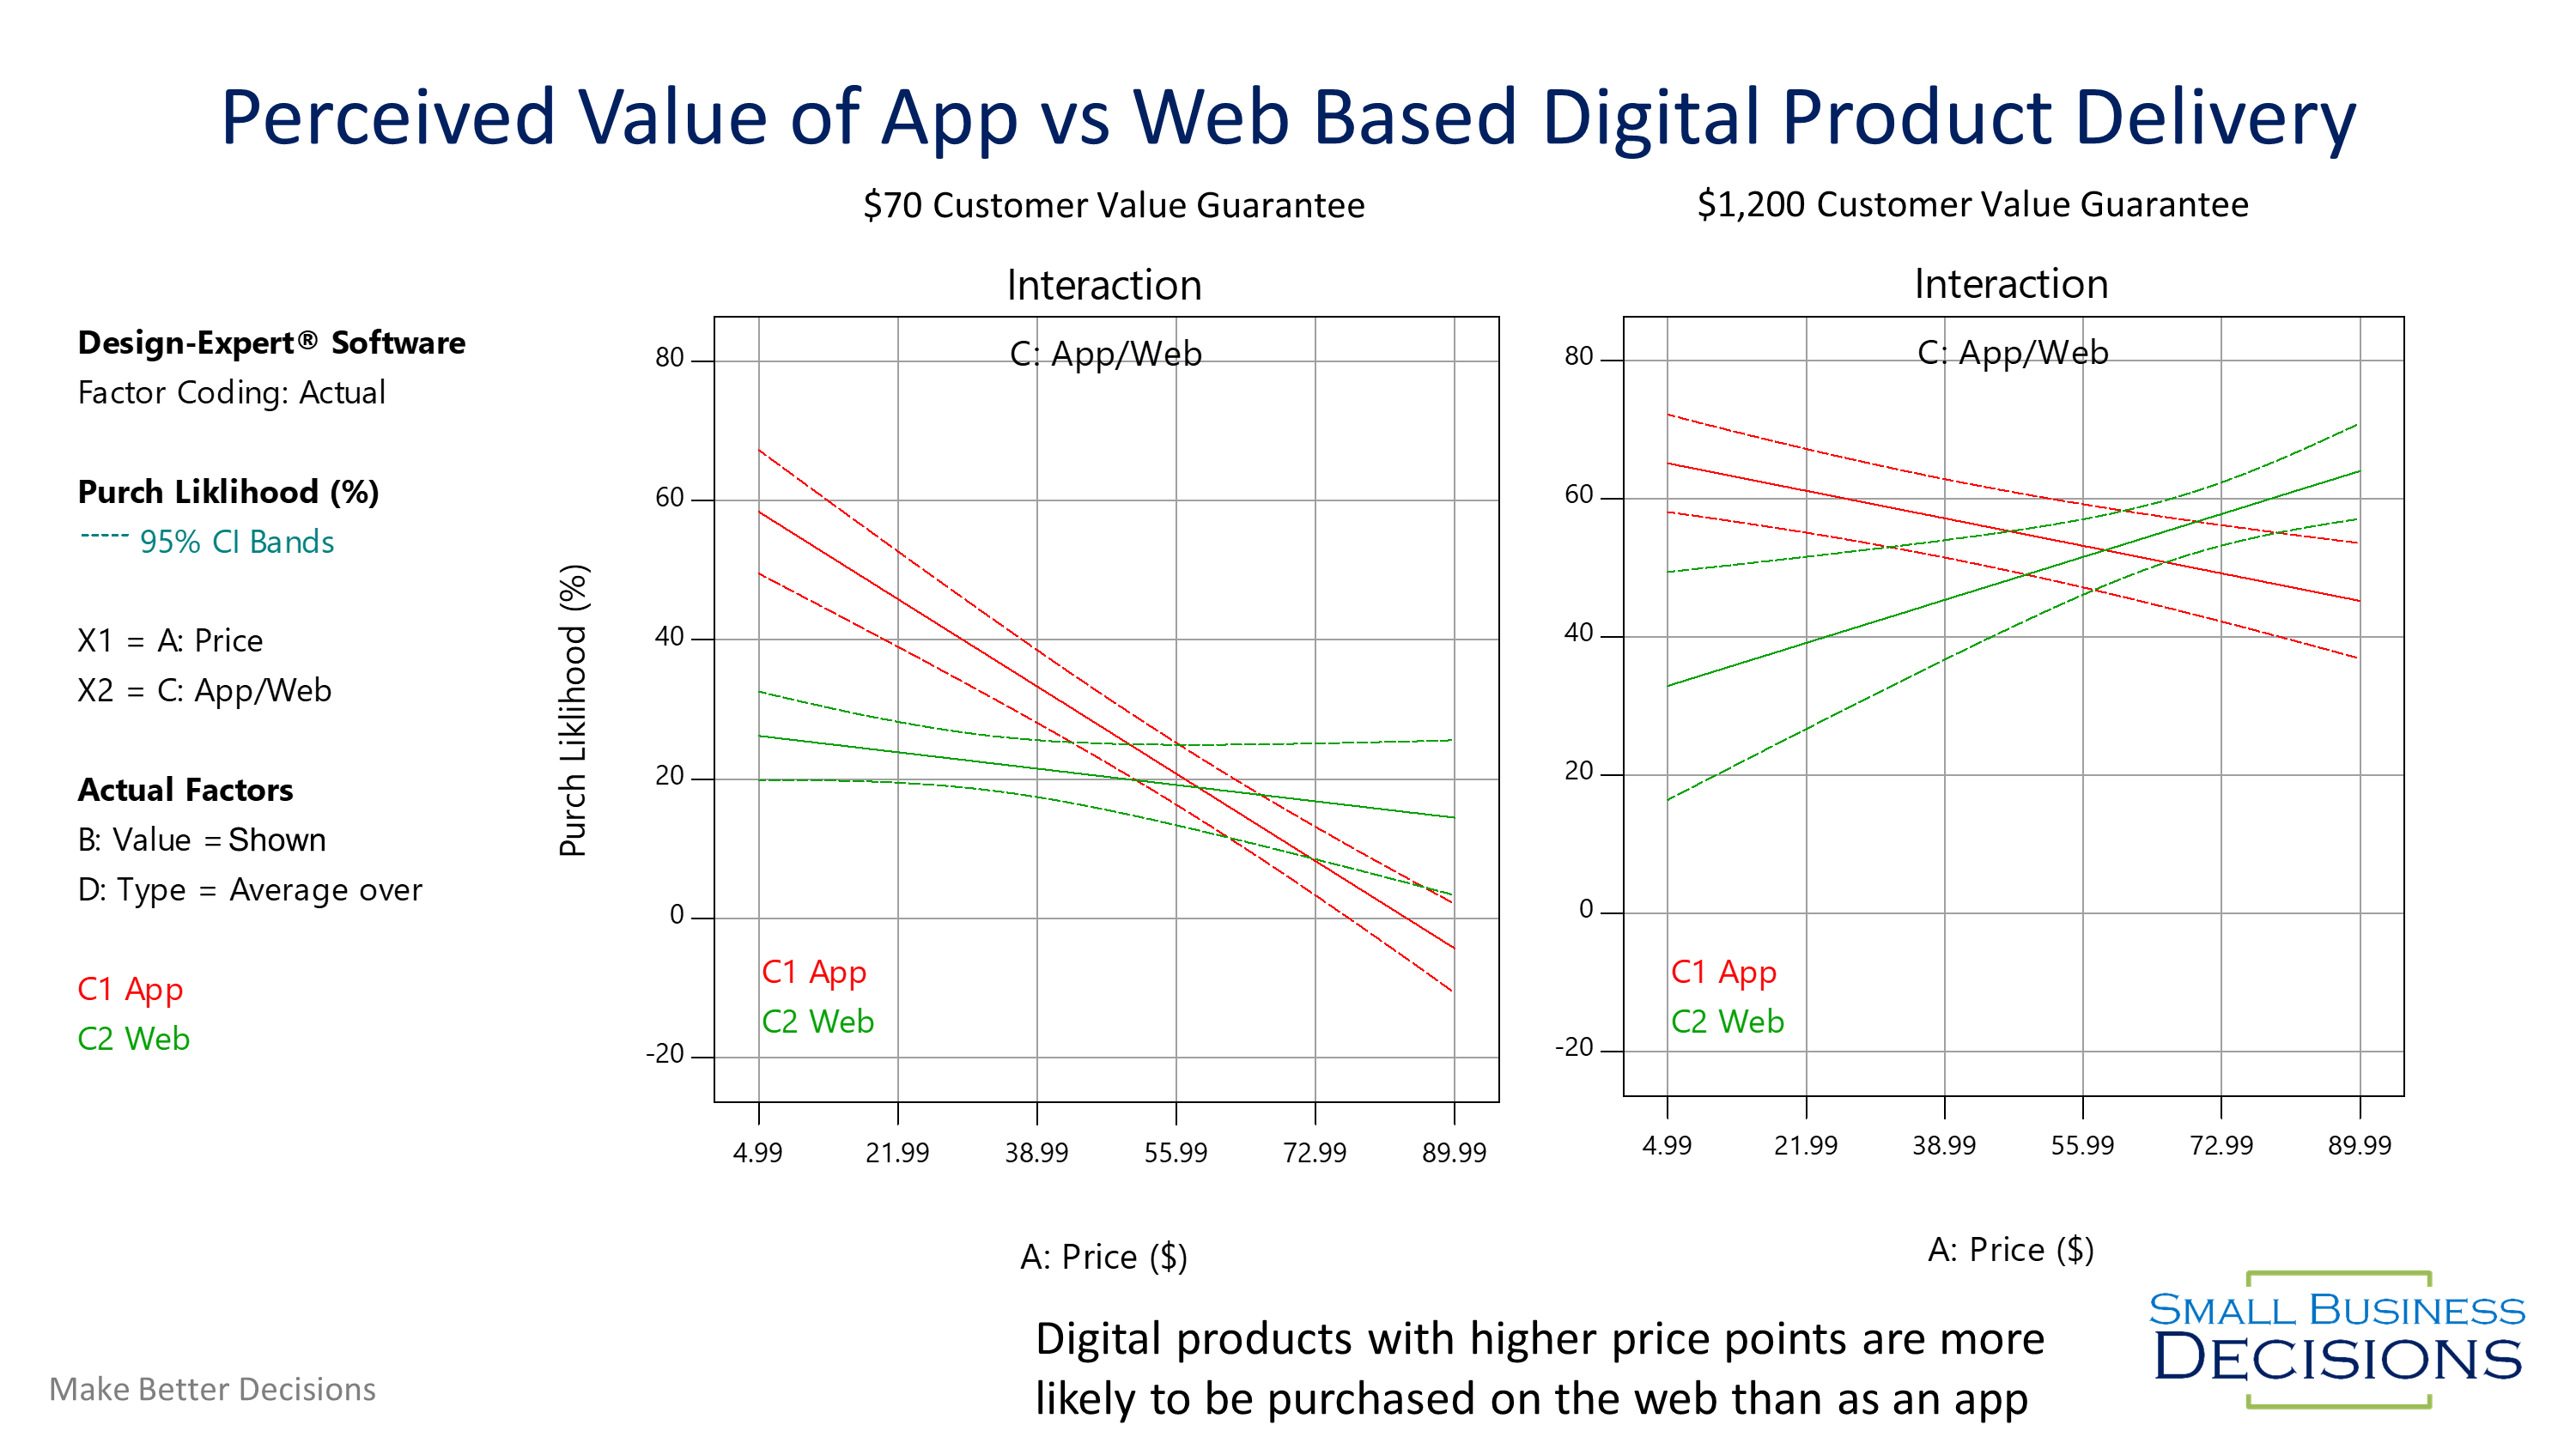 Web vs App Value Perception